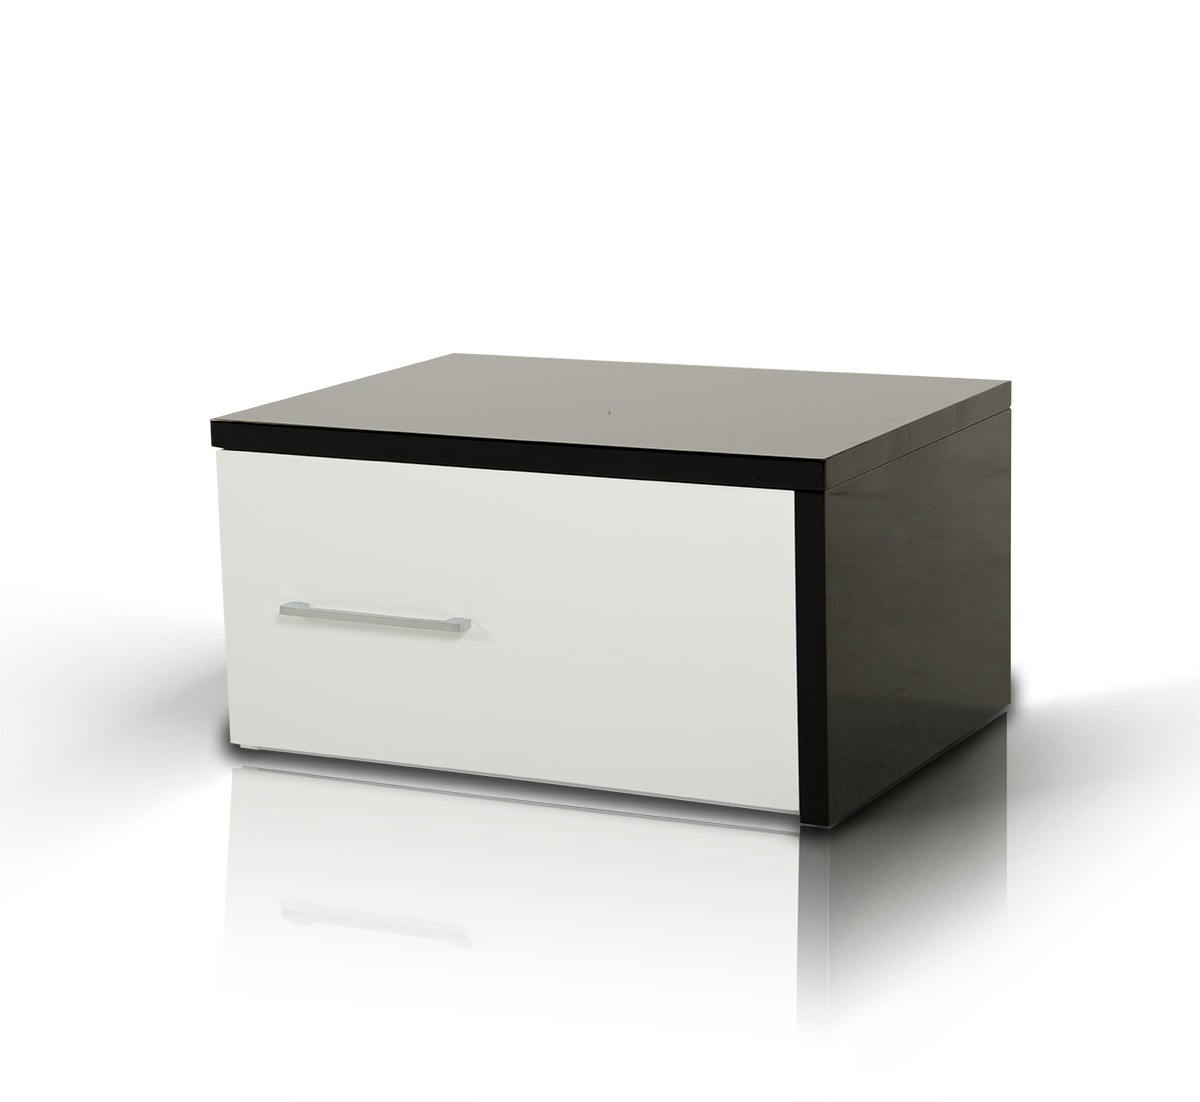 infinity  contemporary night stand - modrest infinity  contemporary night stand